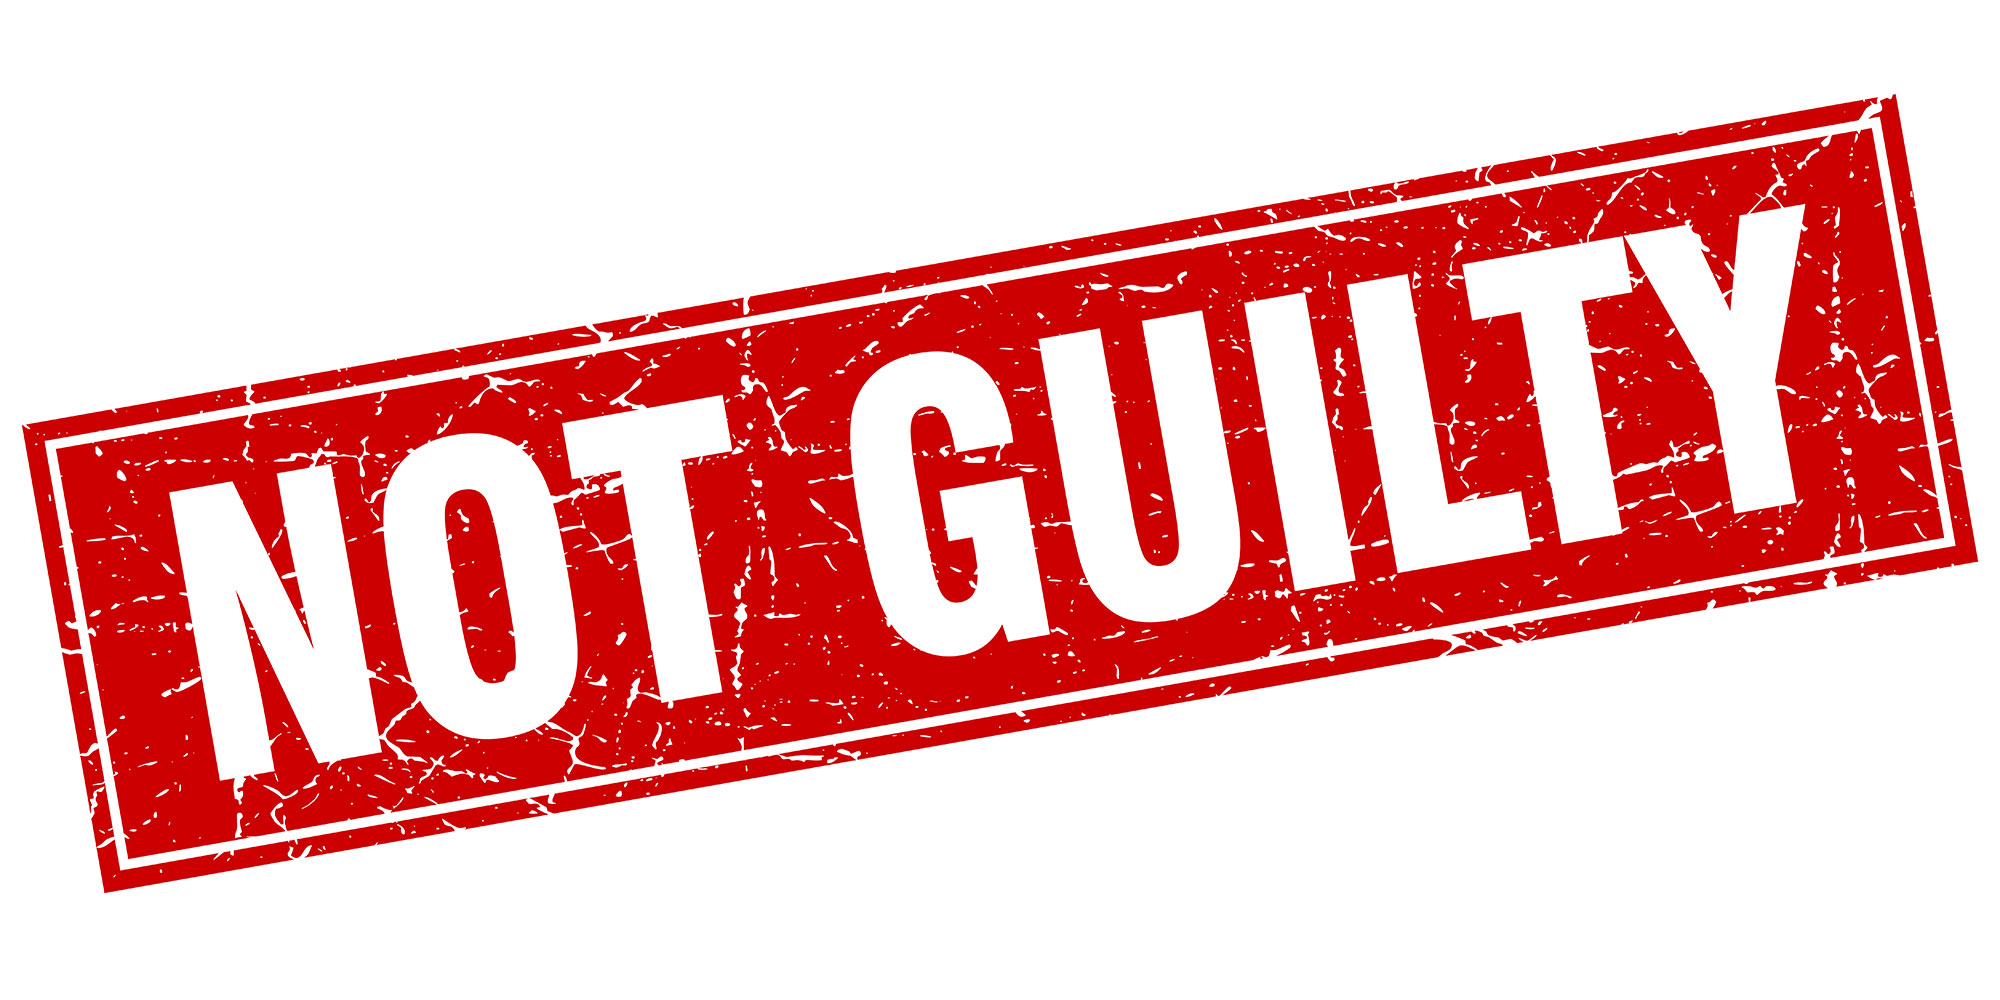 Not Guilty Vindicates Client Arrested For A Dui